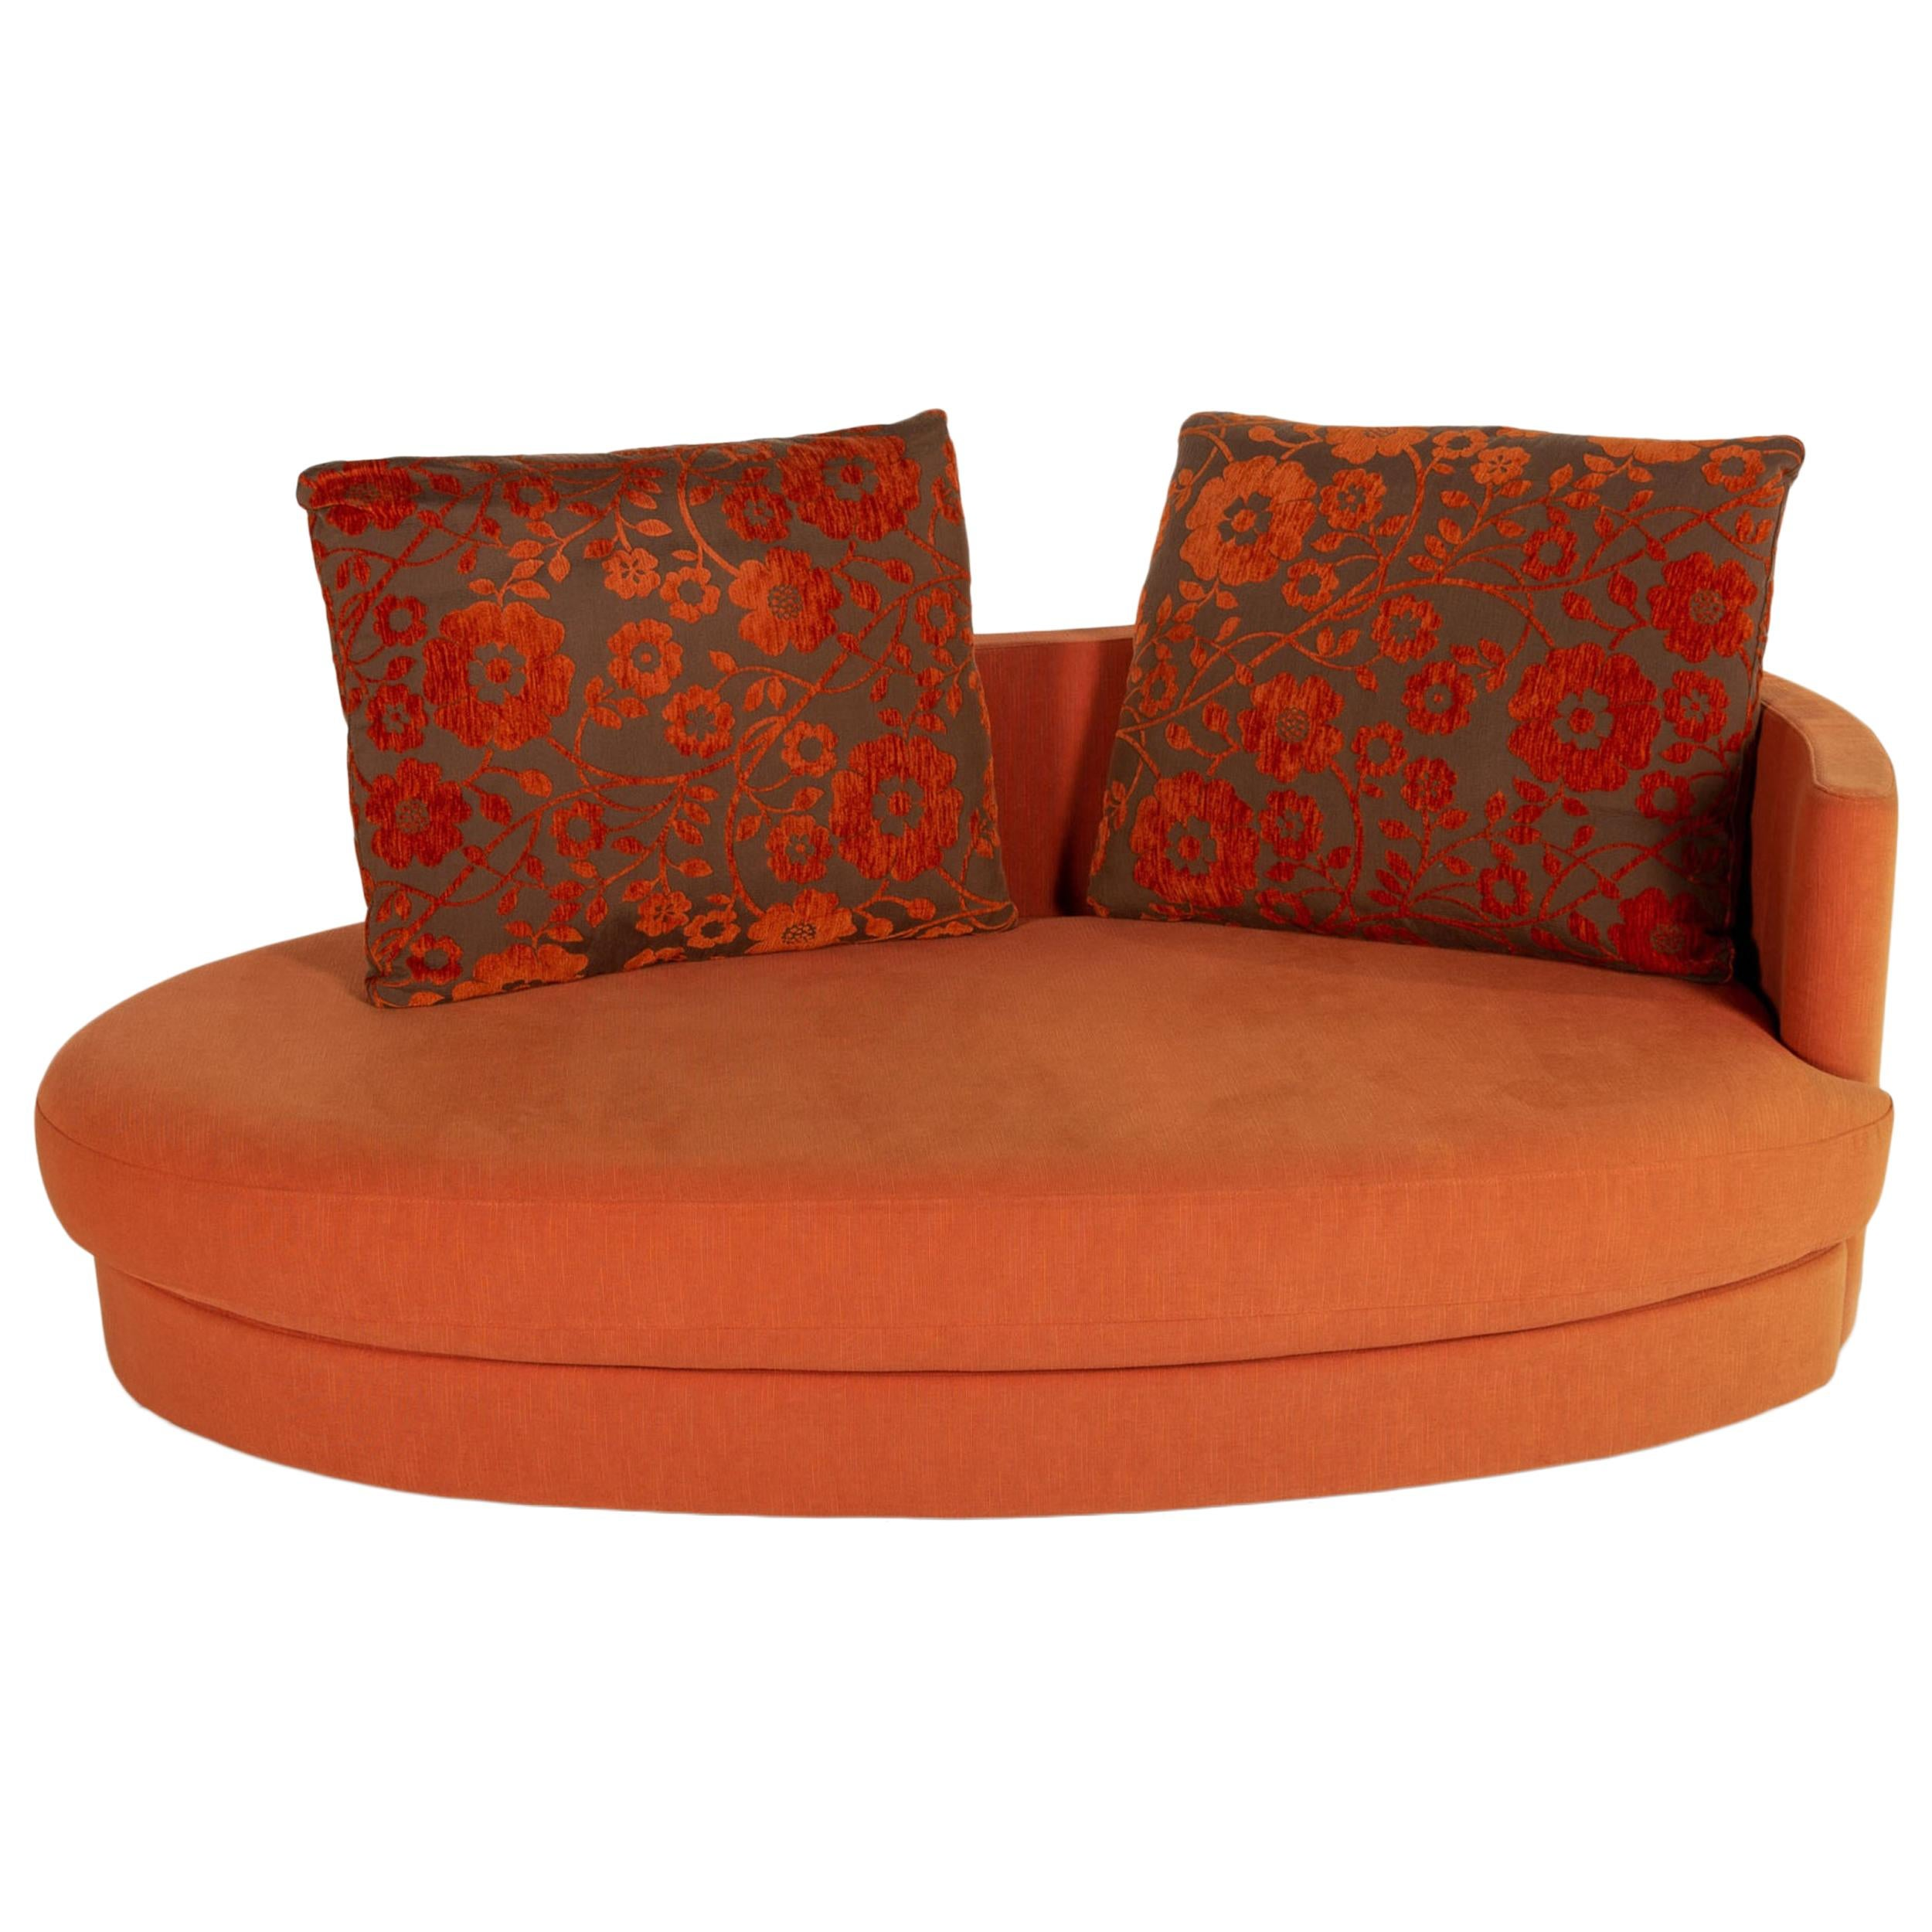 Rolf Benz 4500 fabric sofa orange two-seater couch